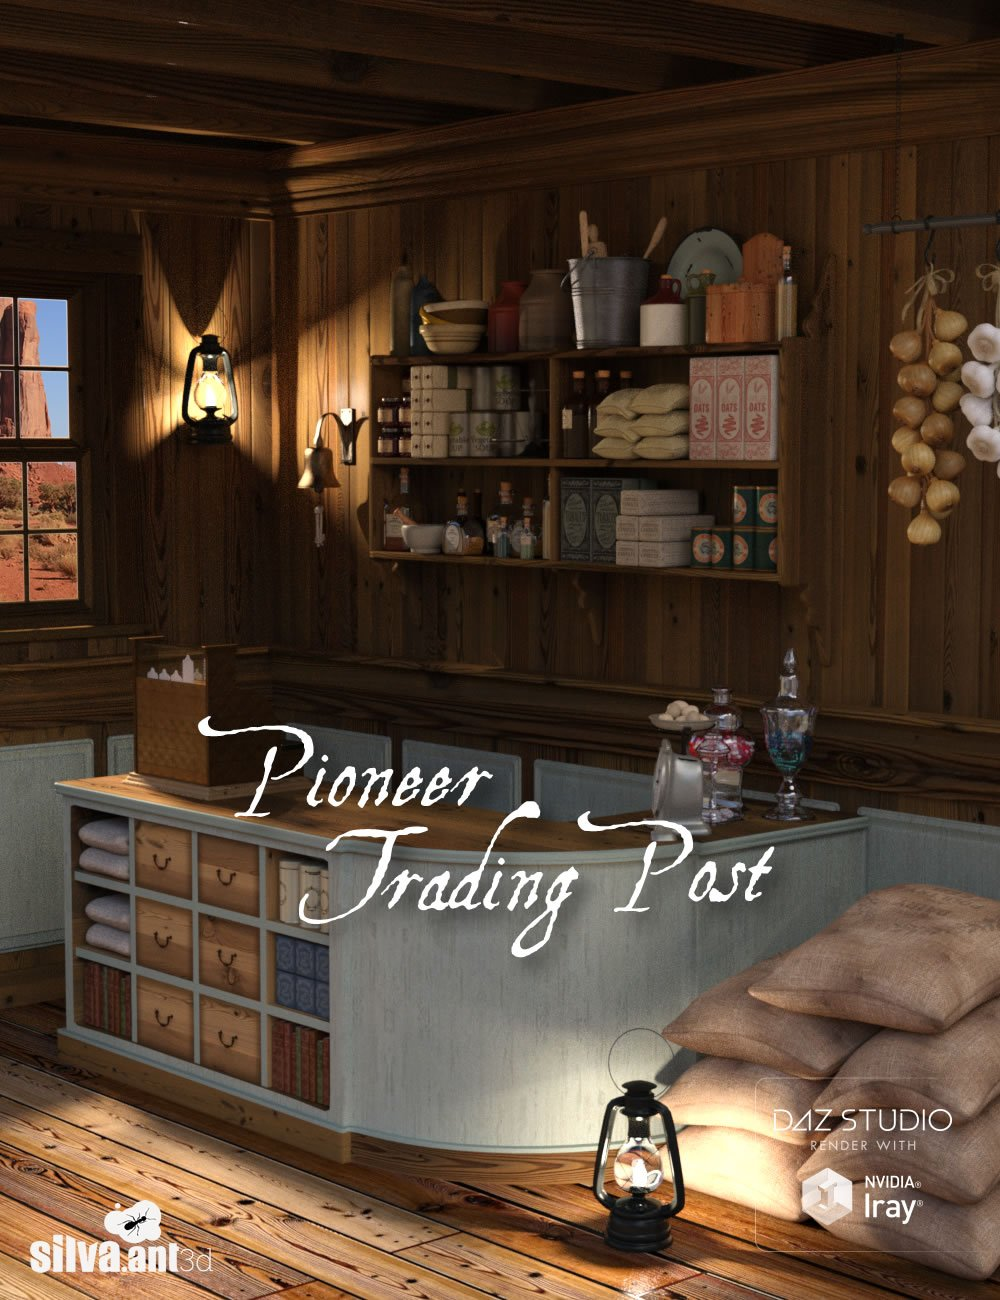 Pioneer Trading Post by: SilvaAnt3d, 3D Models by Daz 3D